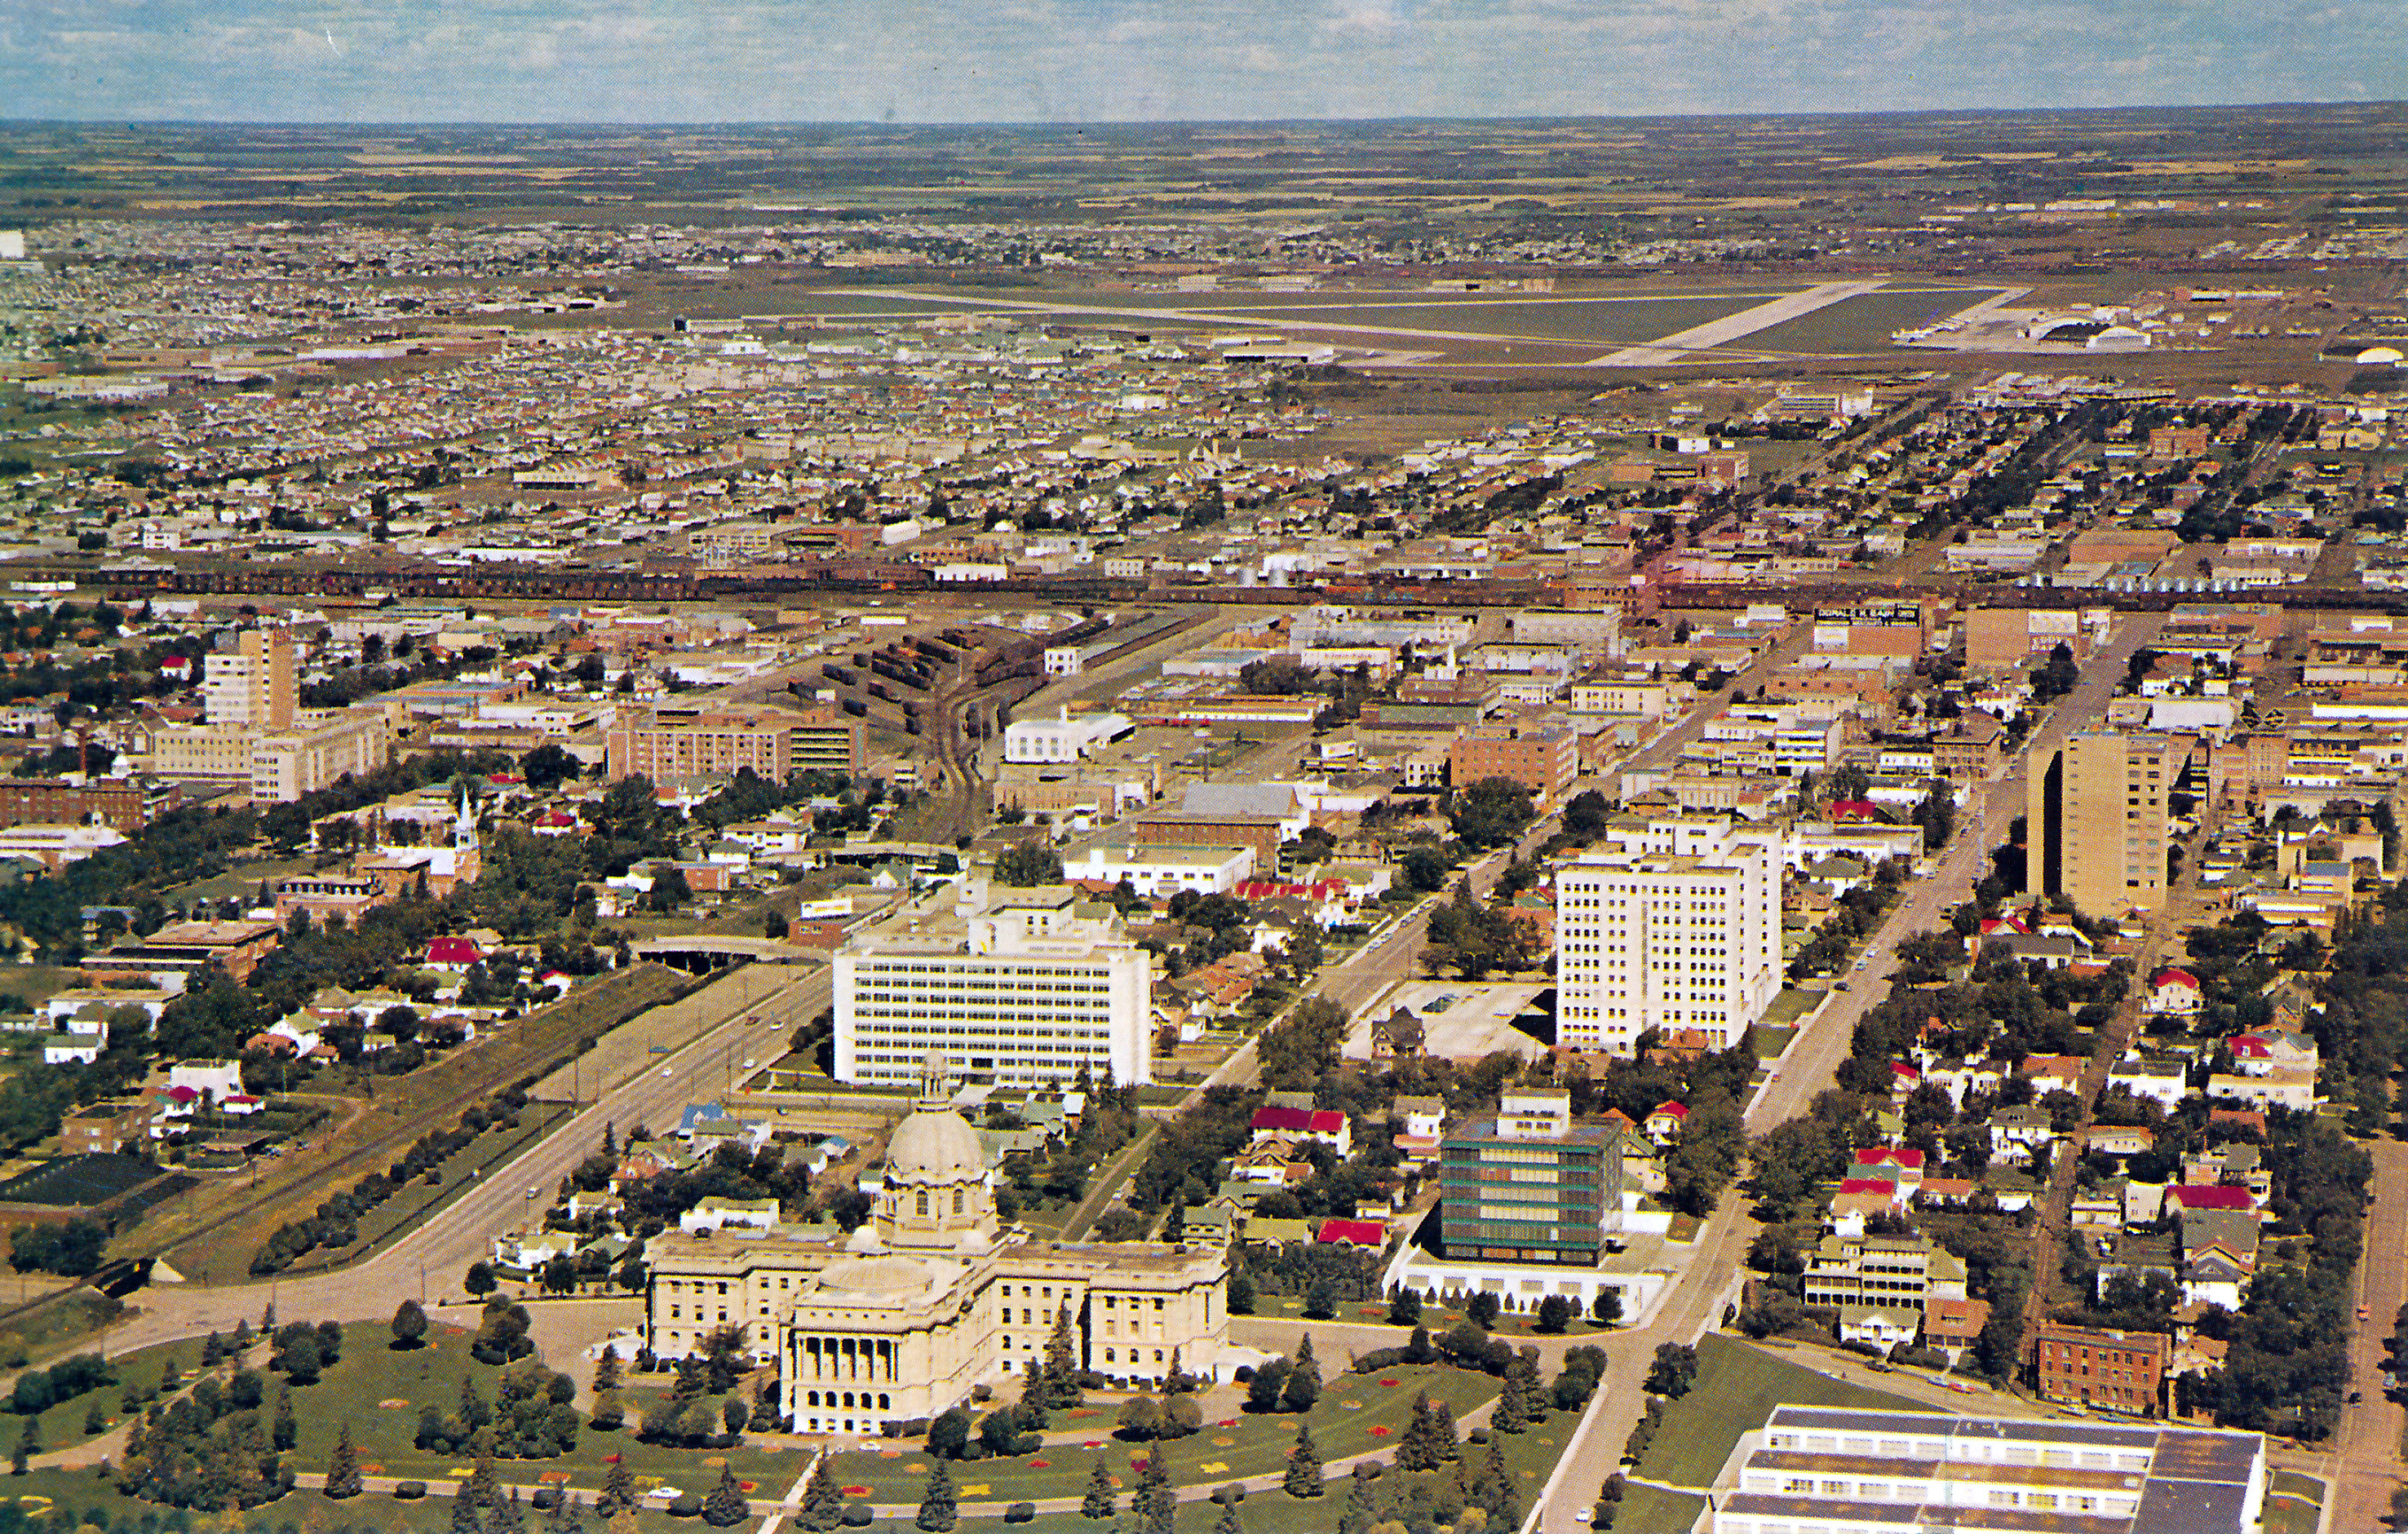 This is a view of the Legislature grounds from some time in the 50's. As you can see there is a large building in the bottom right that has been torn down and the auxiliary building that sits on the Legislature grounds is substantially shorter than it is today. There have been a huge number of changes to this area in the last 60 years.